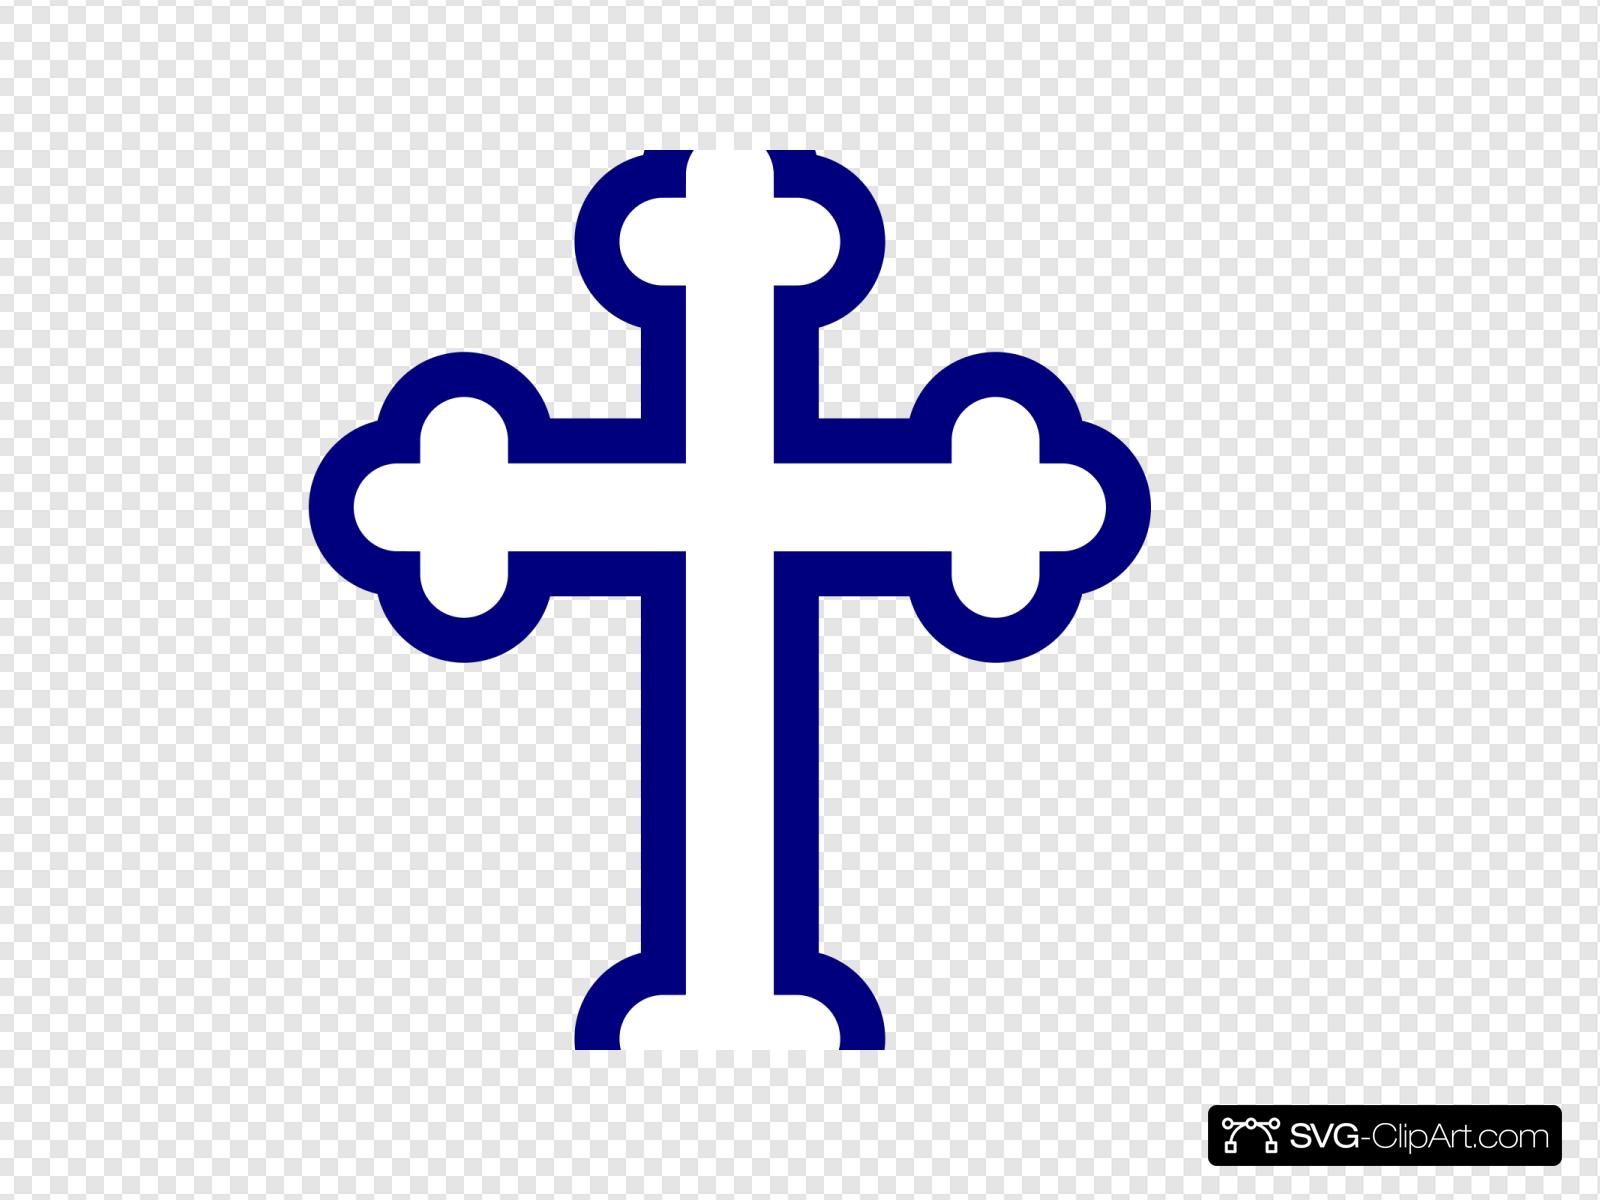 Cross outline blue. Clip art icon and